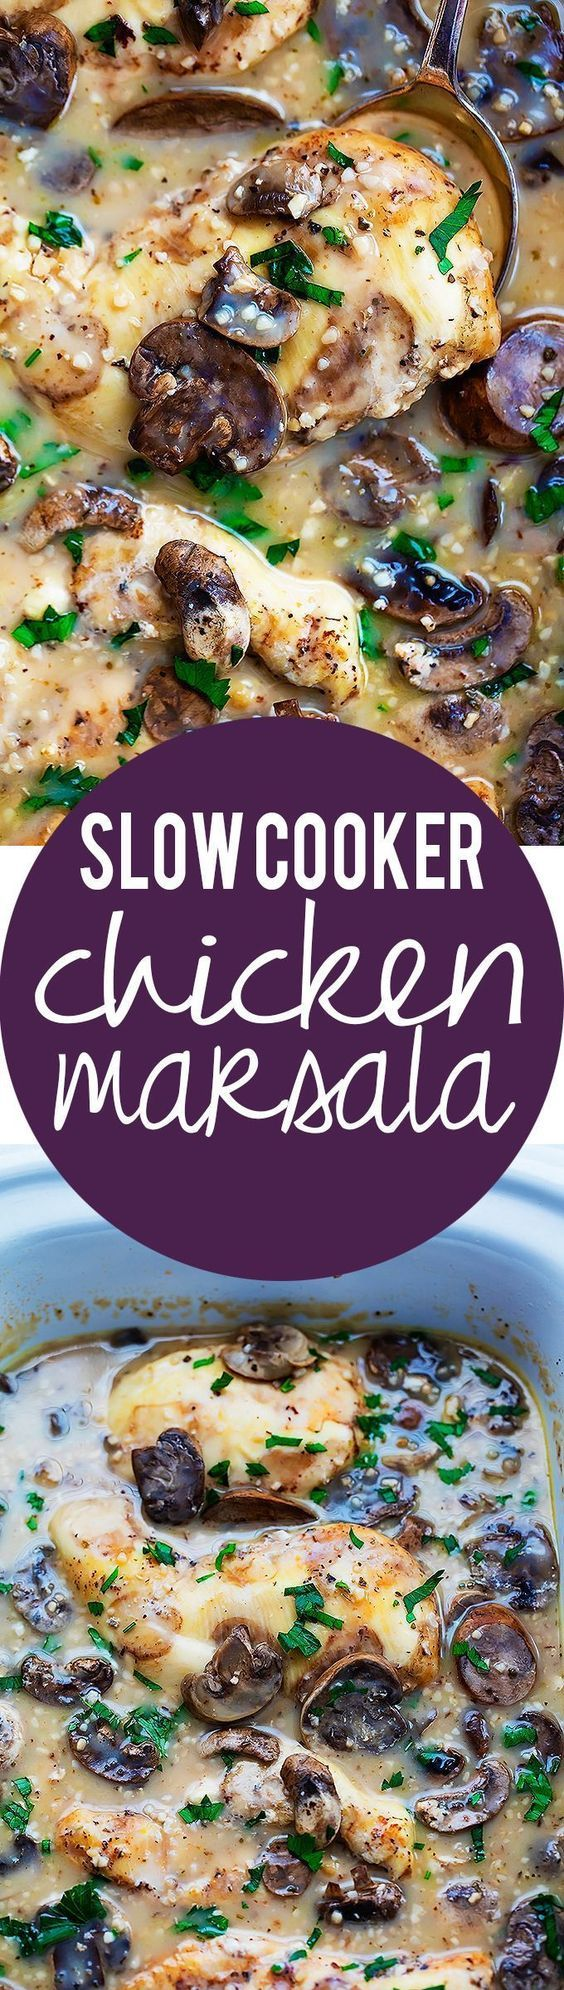 We've rounded up the best collection of Chicken Slow Cooker Recipes Easy Ideas that you can make at home. Check them all out now.